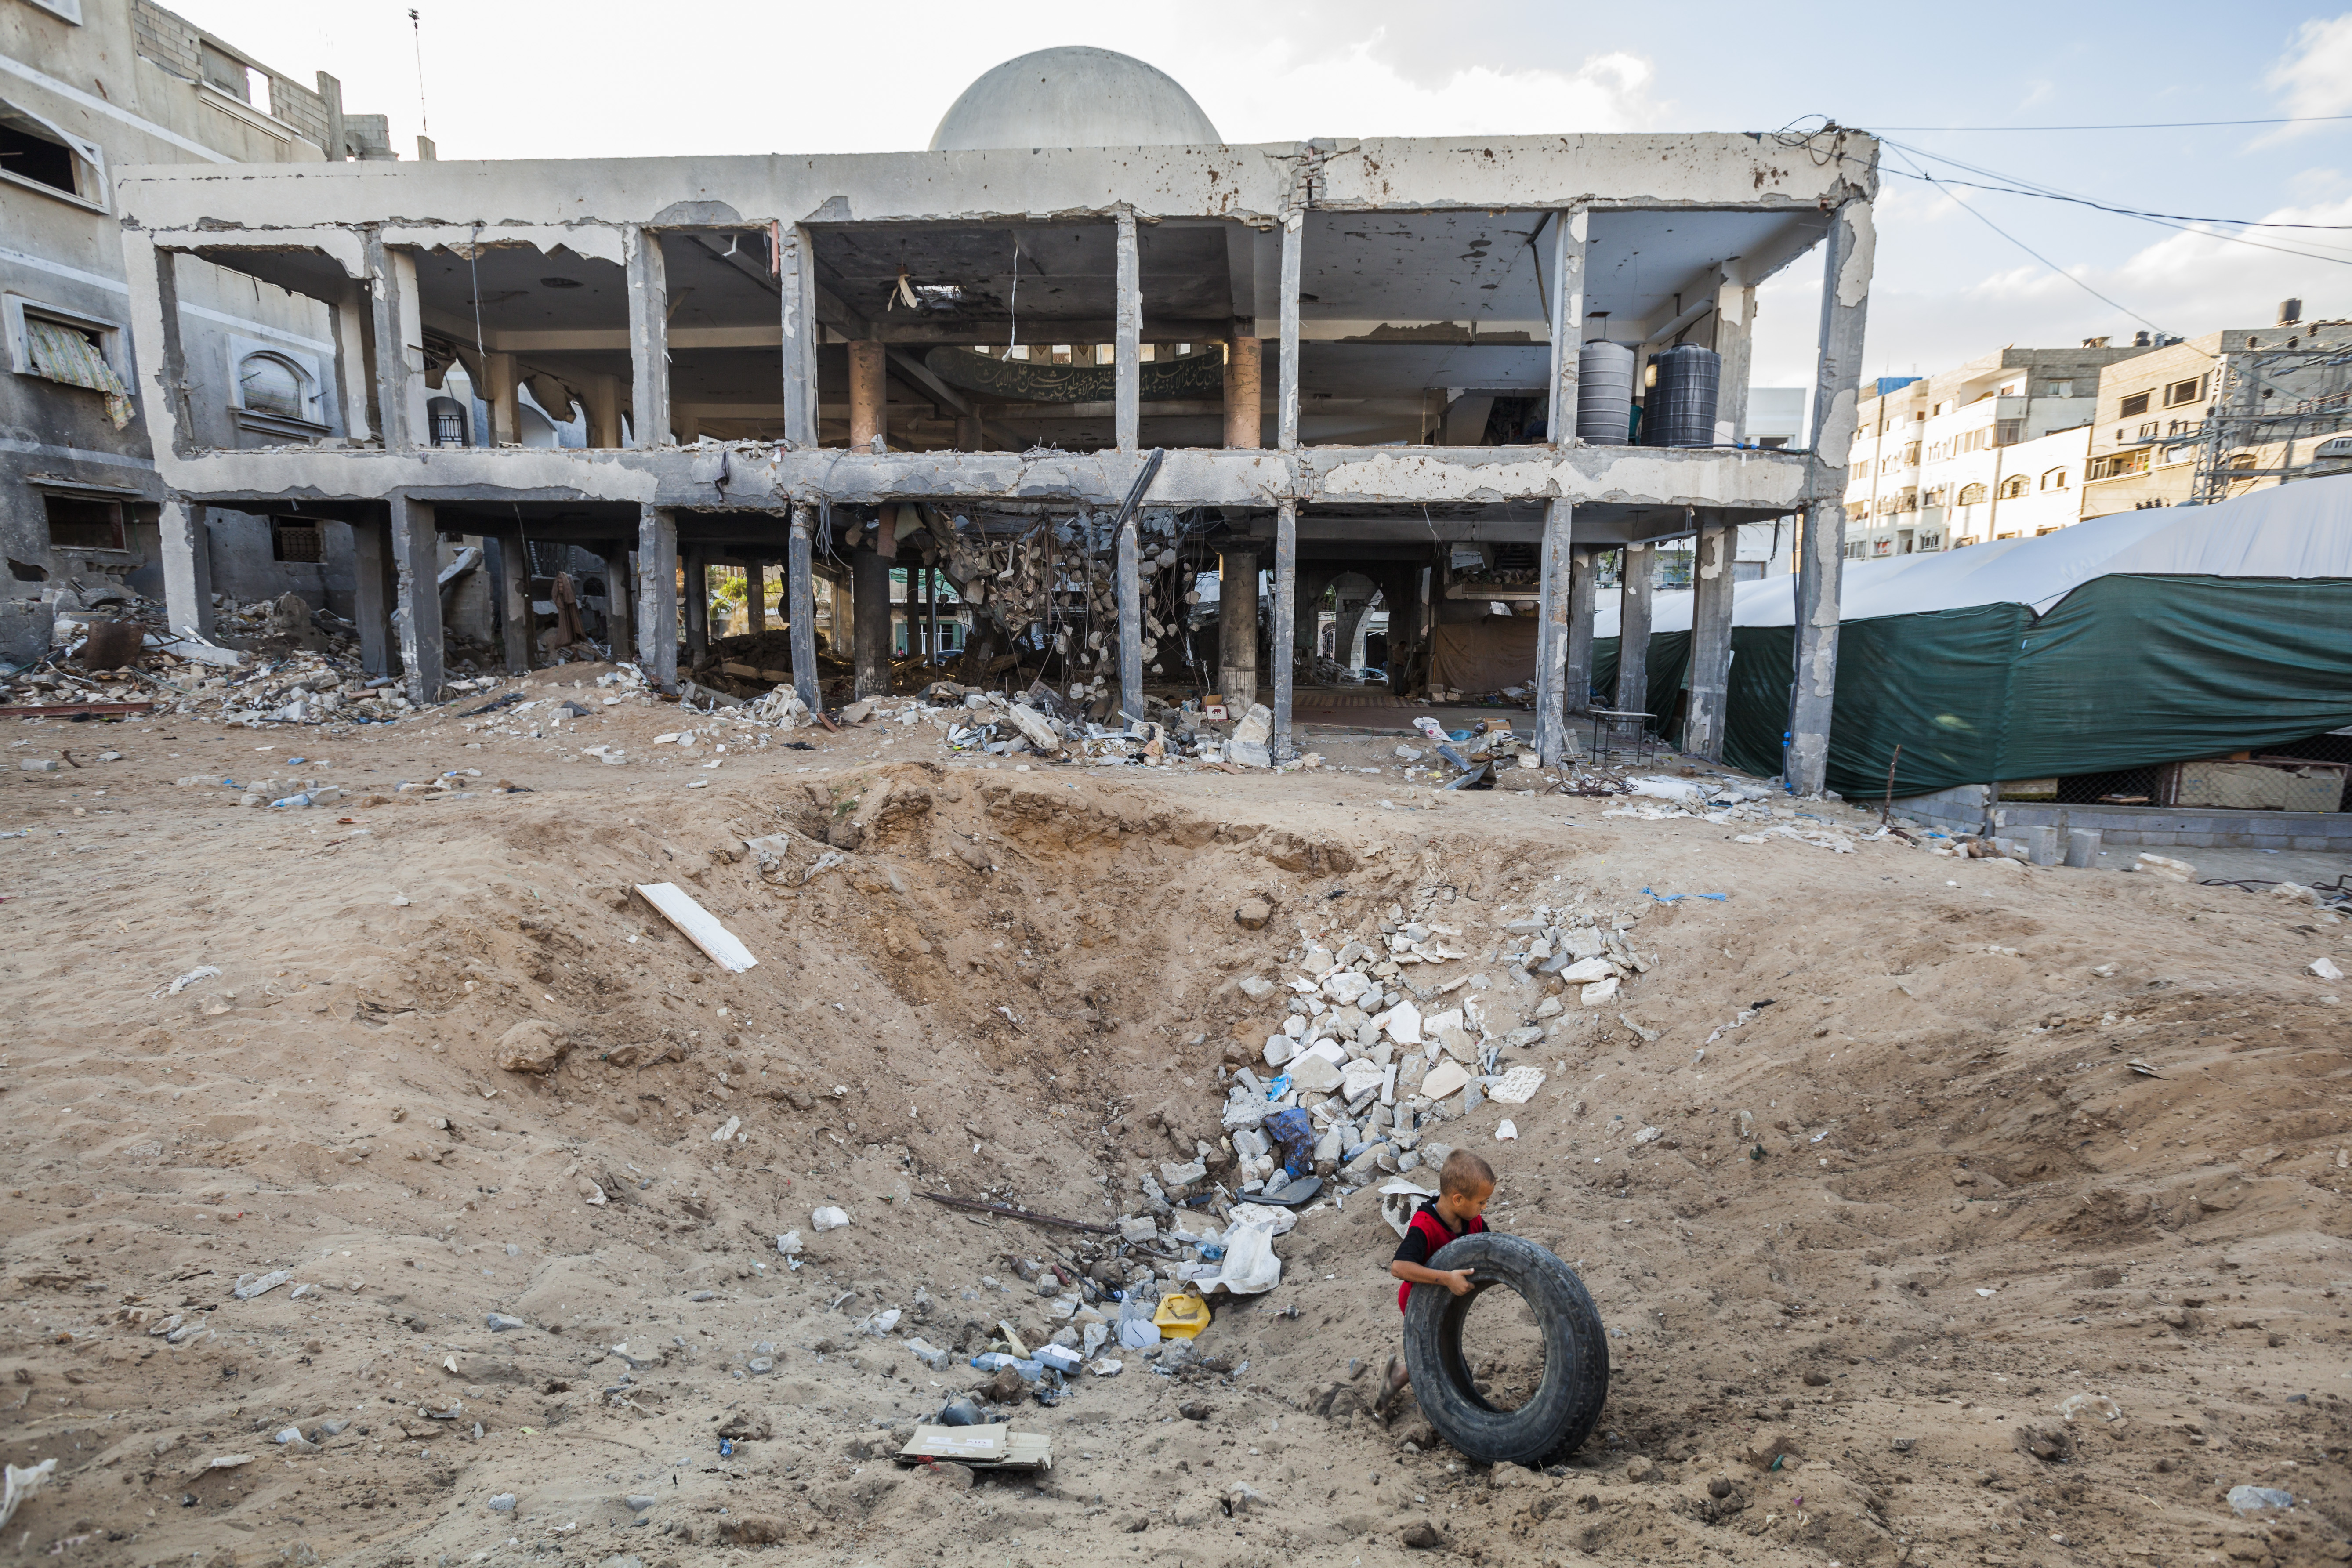 Destroyed mosques in Gaza after the last war against israel : Child plays with a tyre in a hole of a bomb close to the destroyed Al Susi mosque in Gaza city.